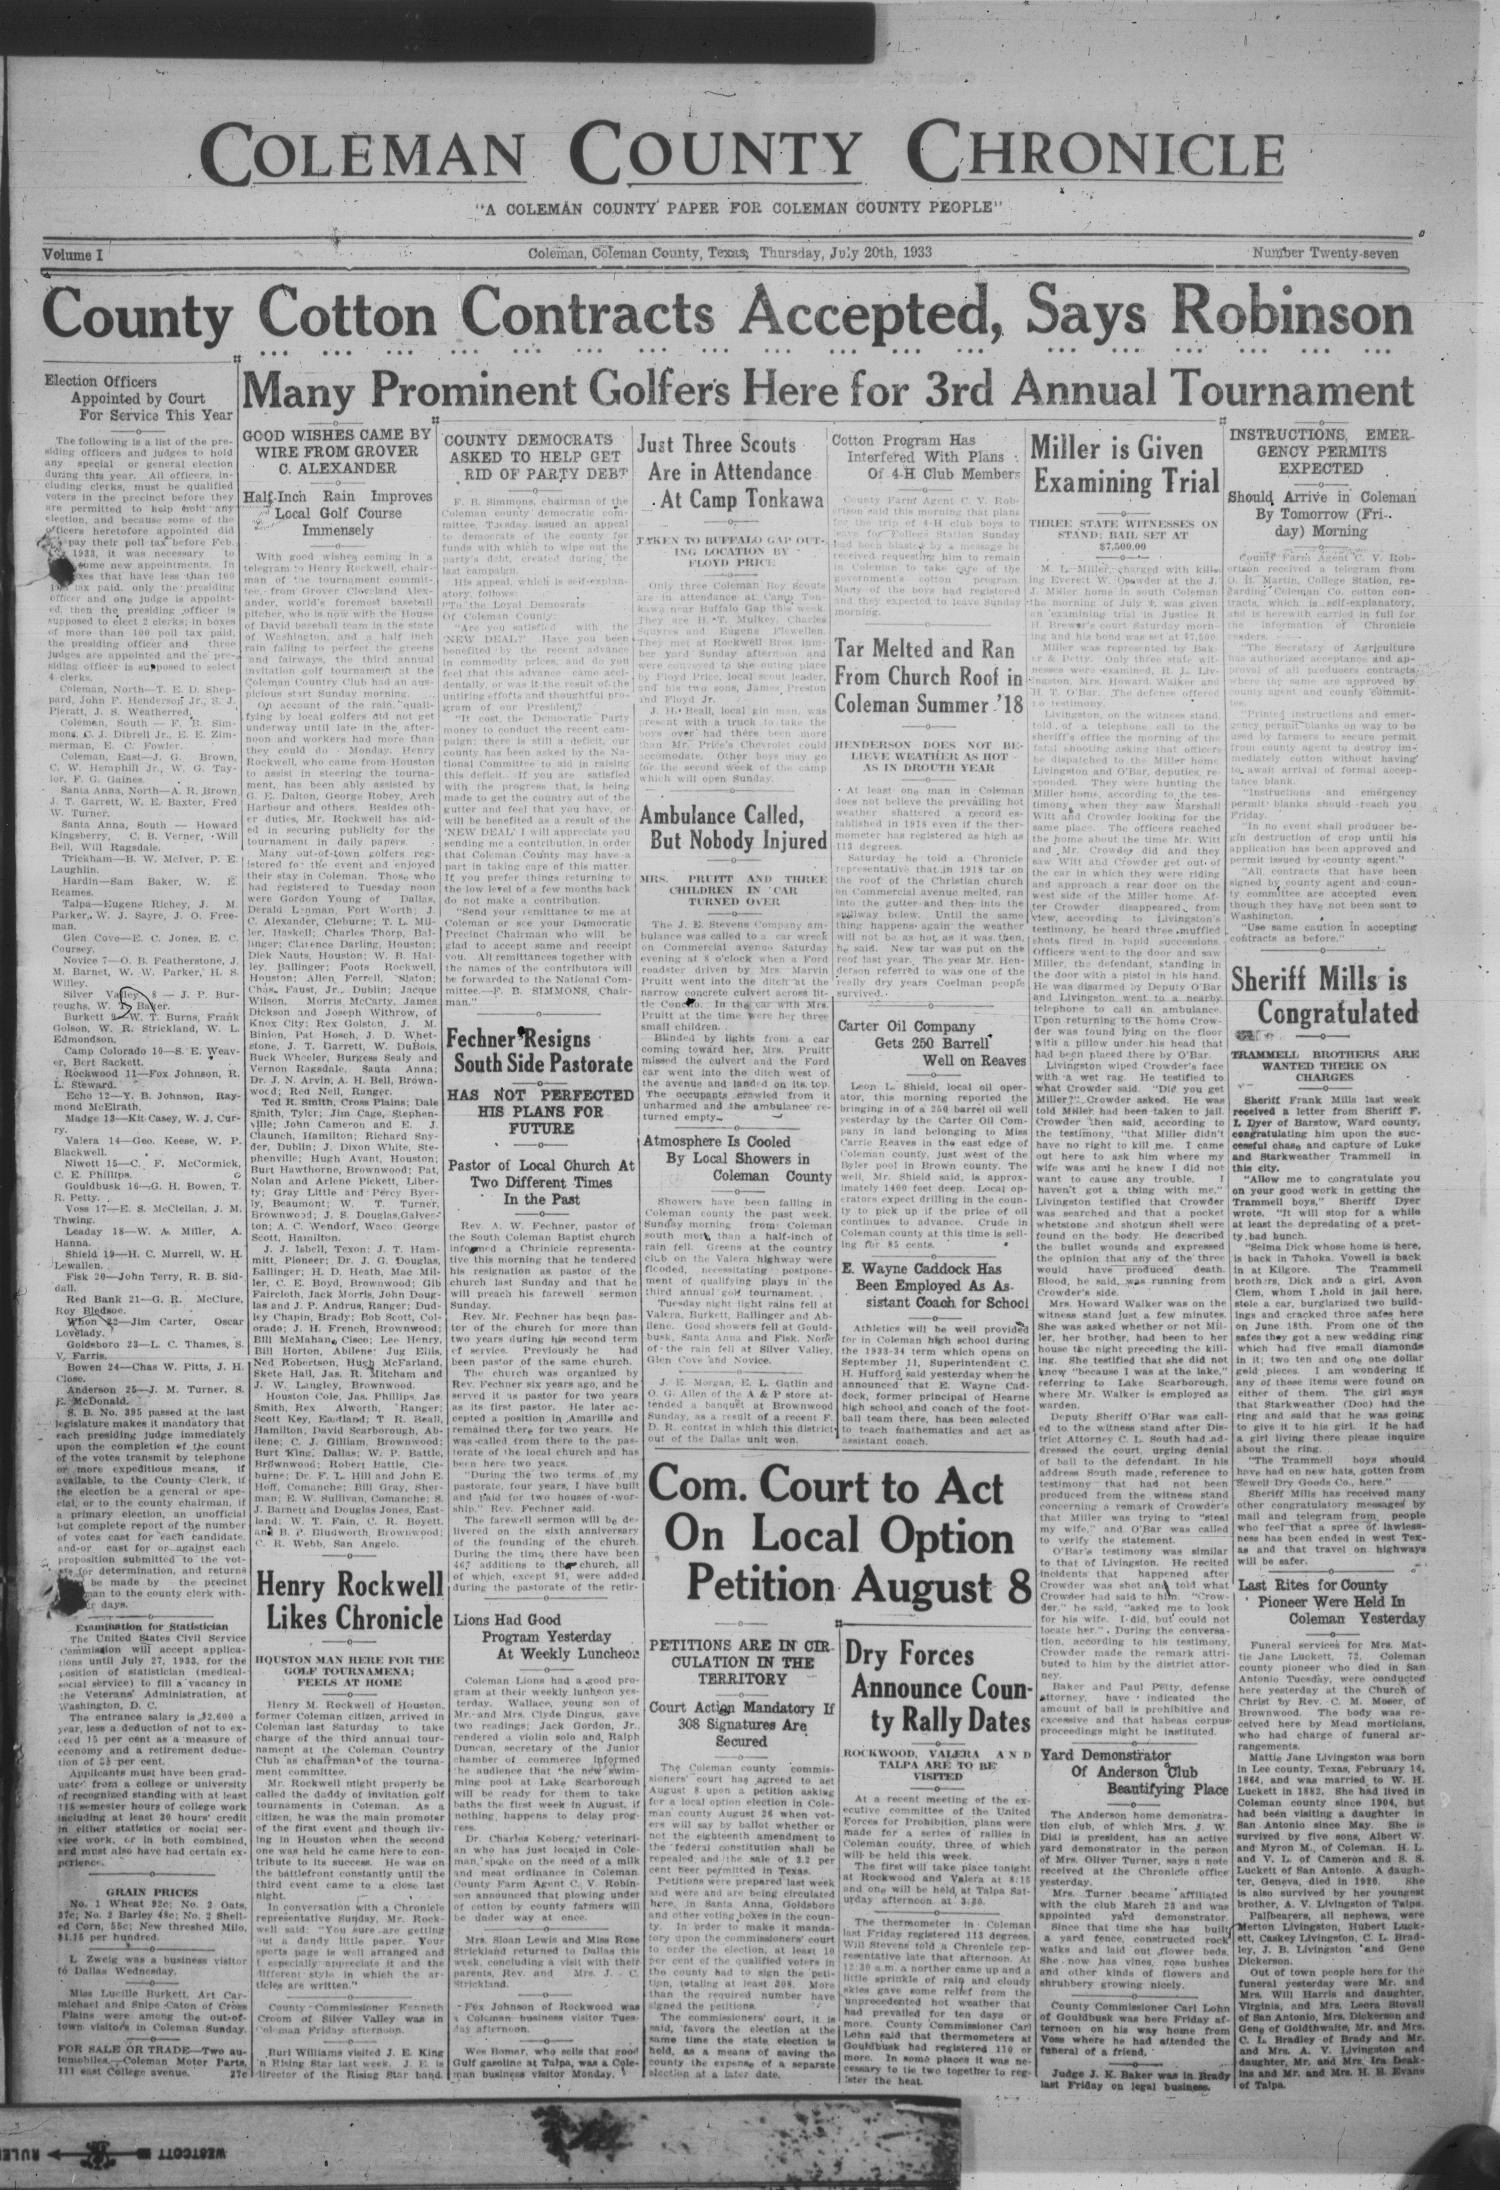 Coleman County Chronicle (Coleman, Tex.), Vol. 1, No. 27, Ed. 1 ...